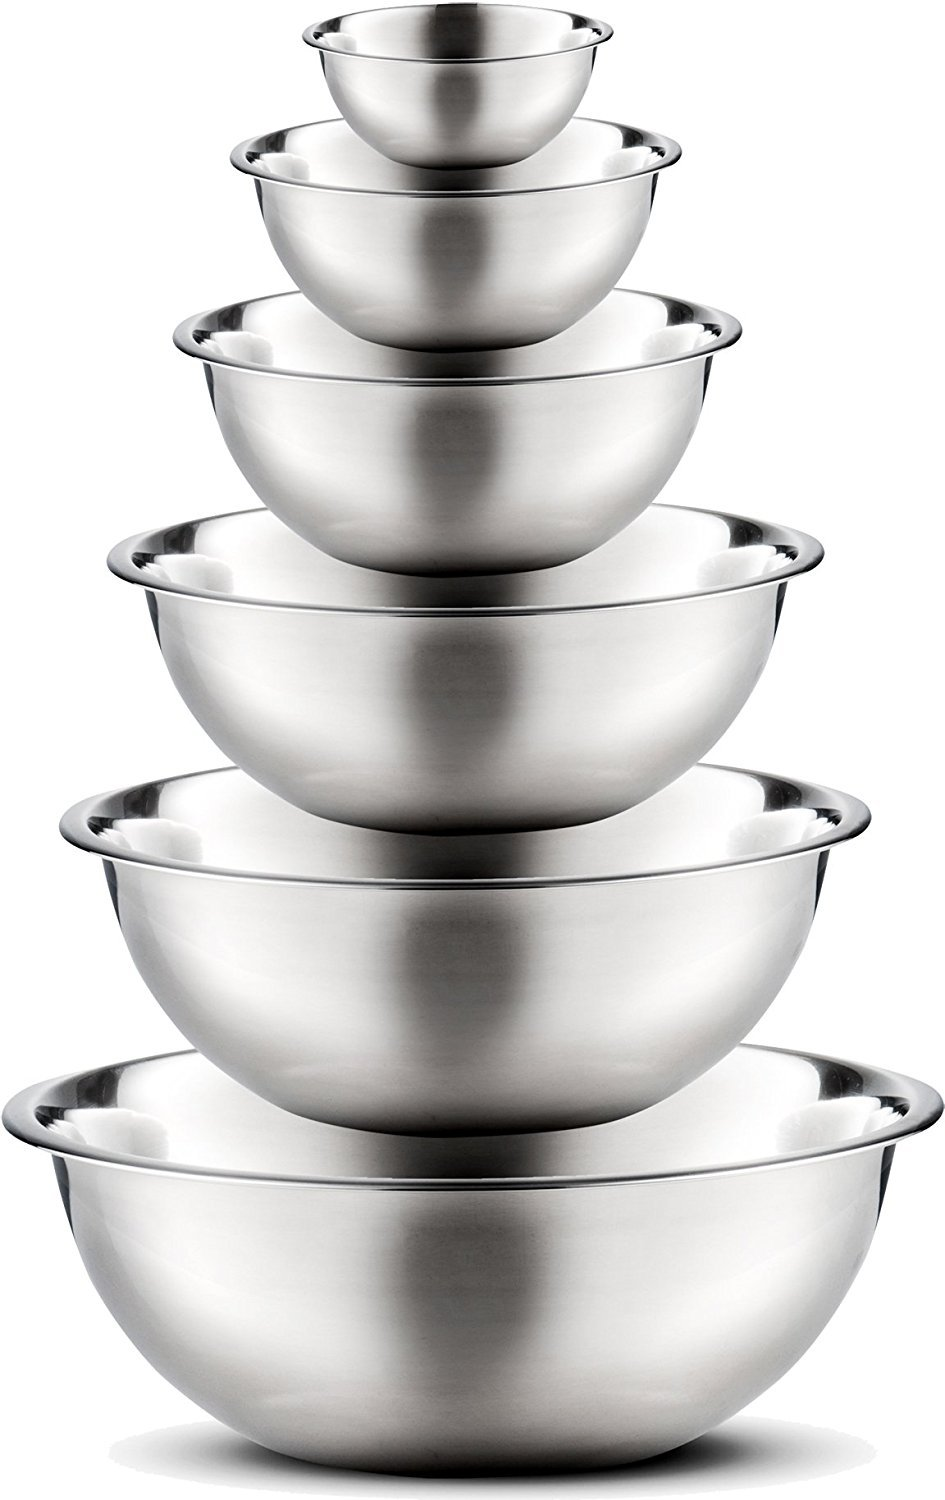 FINEDINE 6 Piece Mixing Bowl Set - Premium Quality Stainless Steel Nesting Mixing Bowls